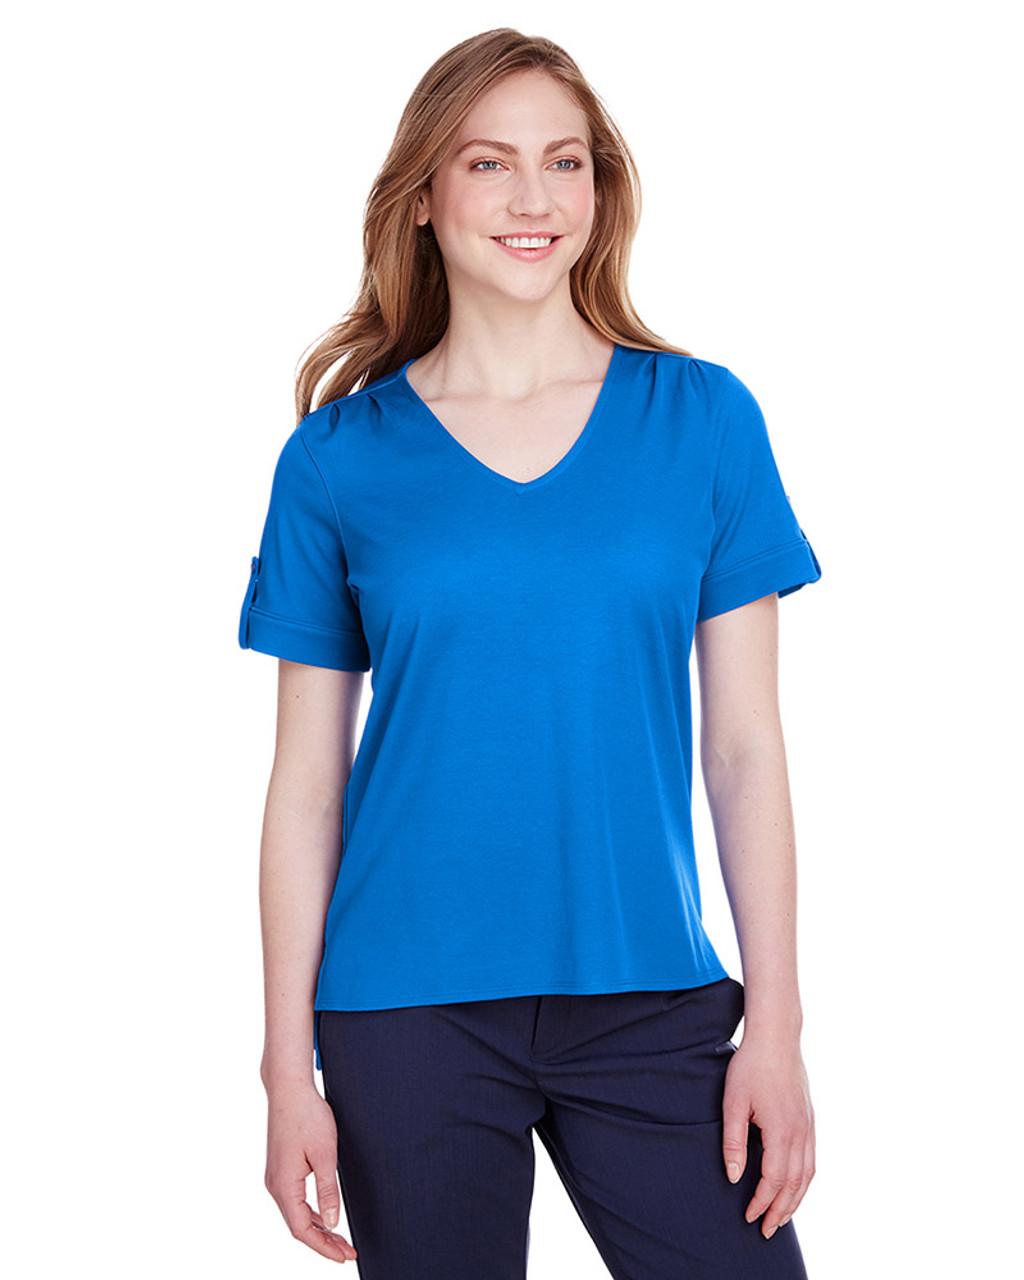 French Blue - DG20WB Devon & Jones Ladies' CrownLux Performance™ Plaited Rolled-Sleeve Top | Blankclothing.ca